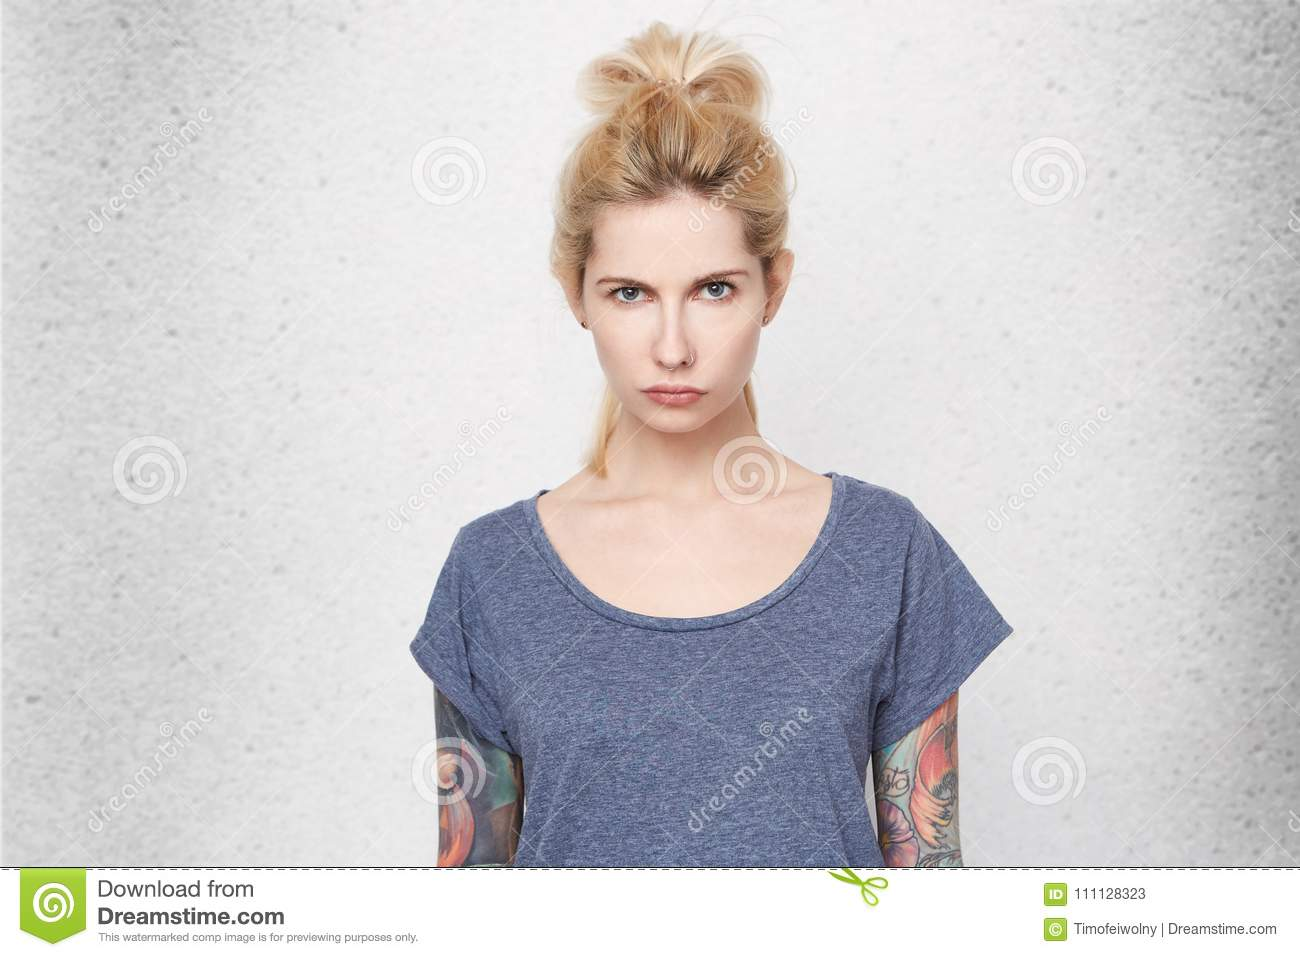 Whats Going On Confused And Surprised Girl With Tattoos Over Her